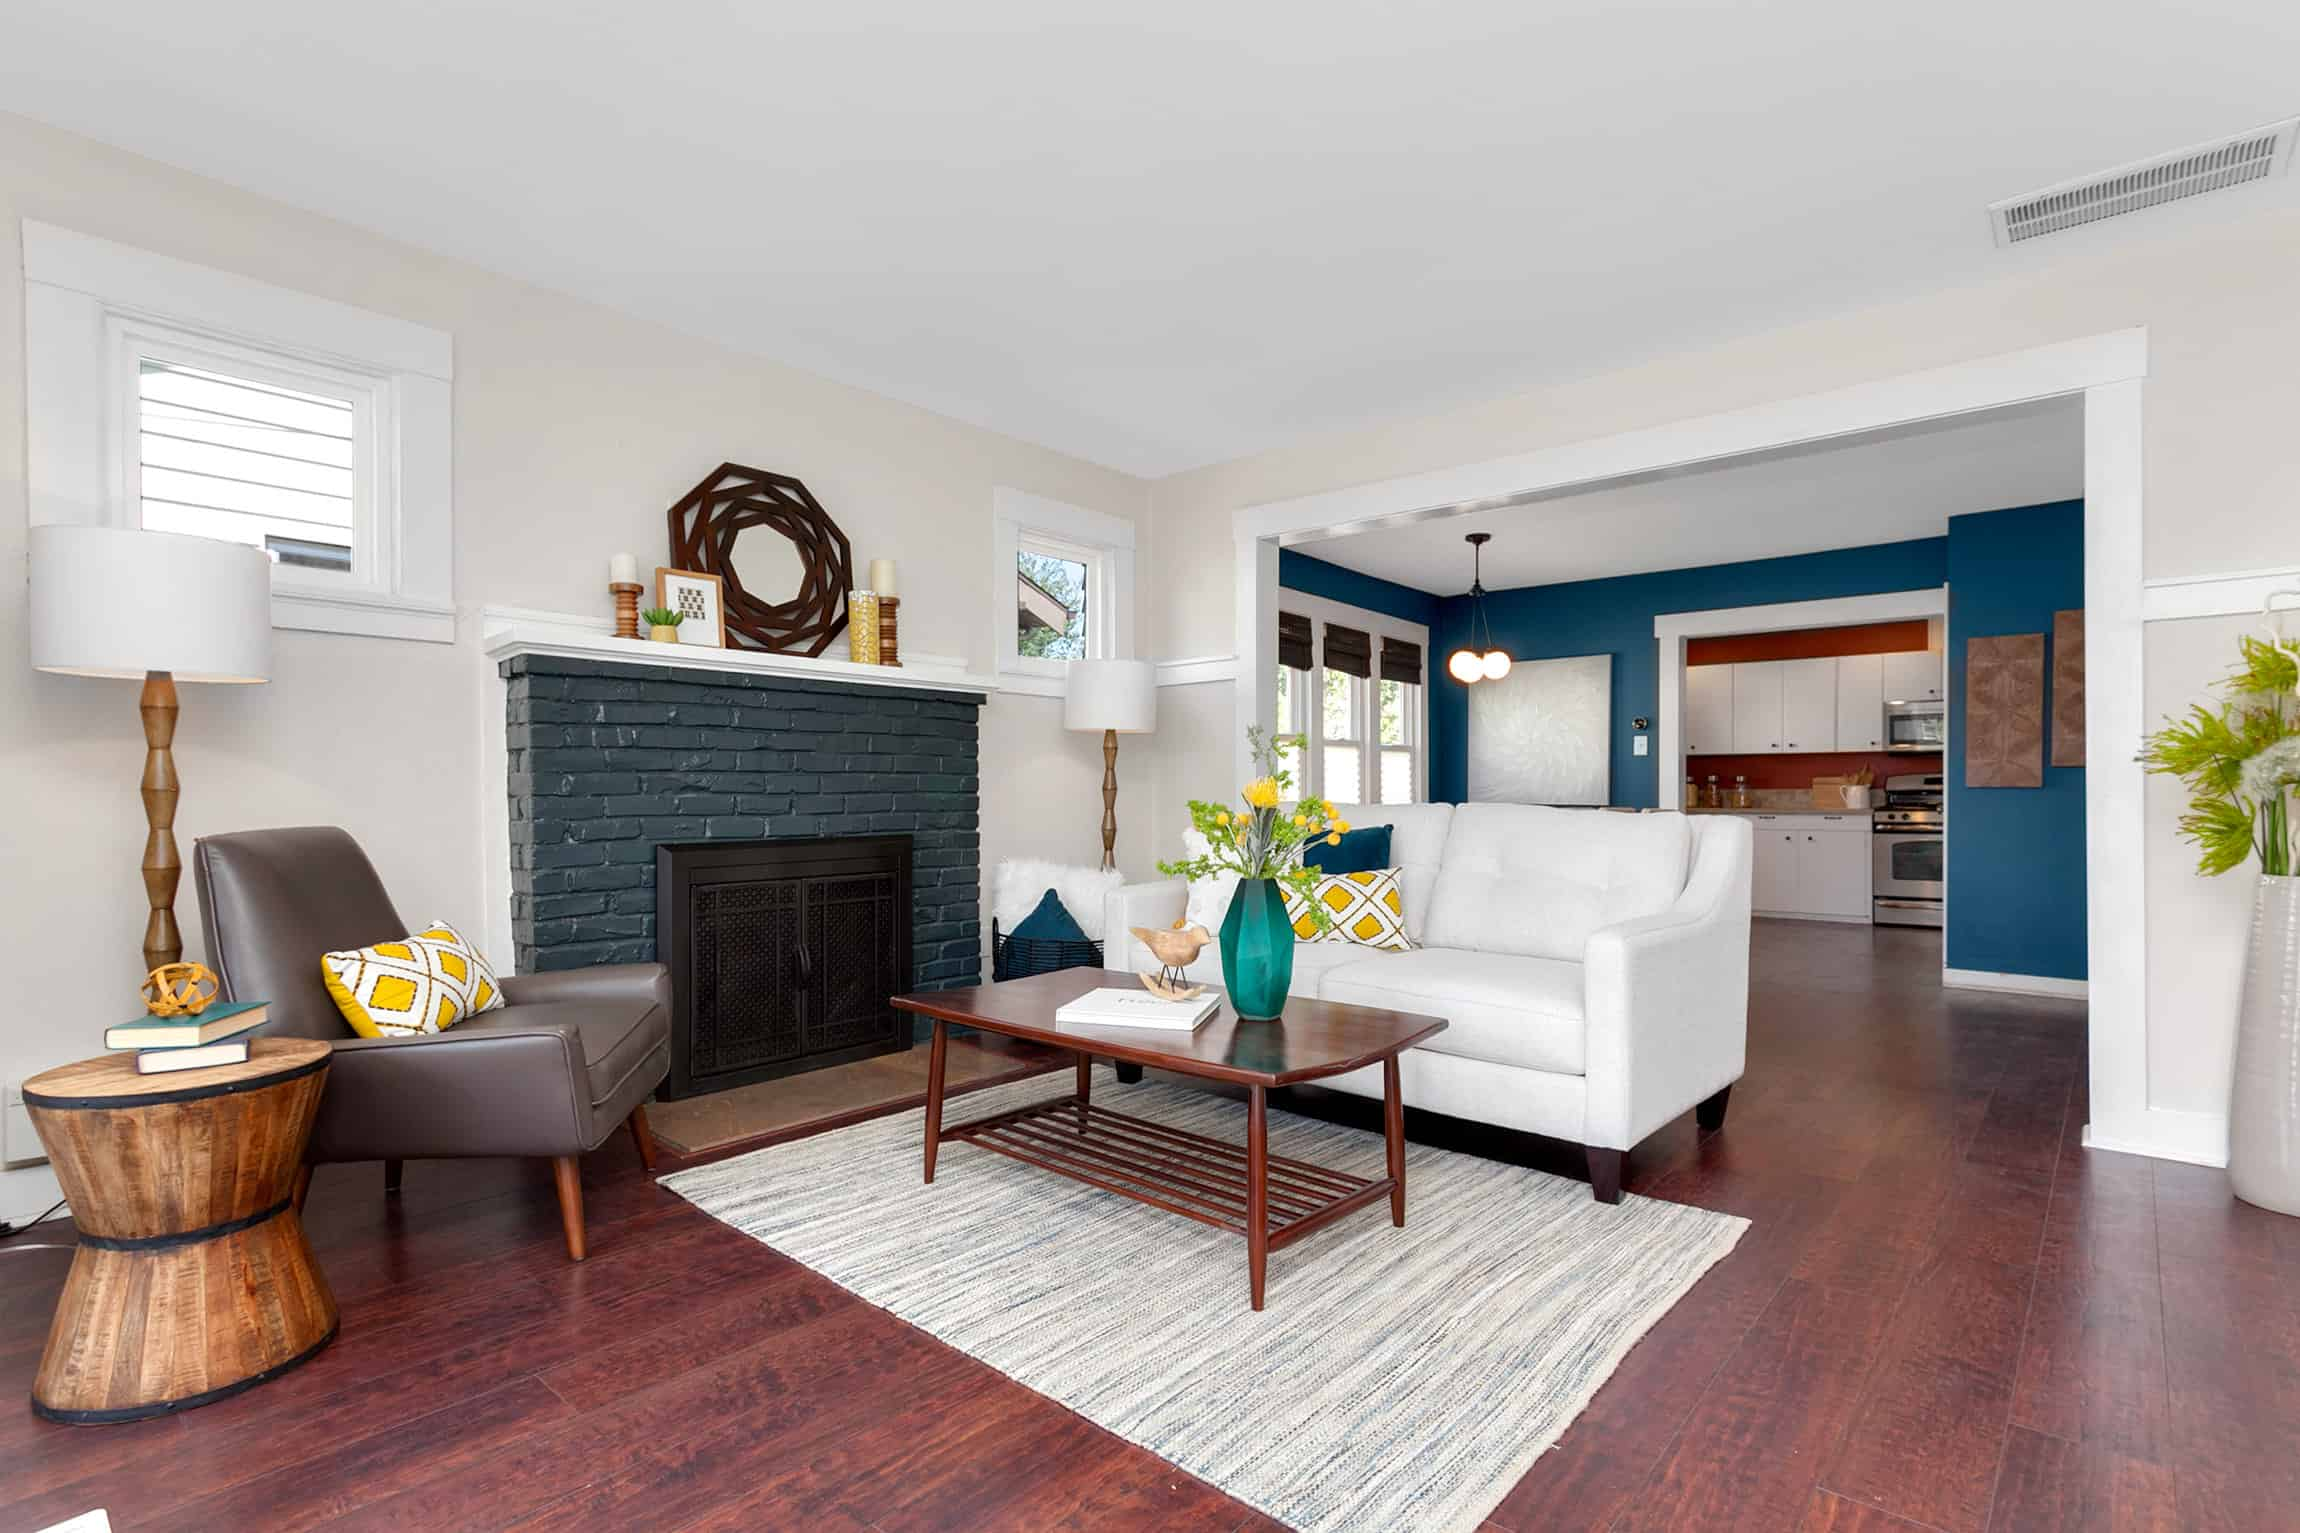 Accent Room Colors Oceanside Sw 6496 Sw 2018 Color Of The Year Seattle Staged To Sell